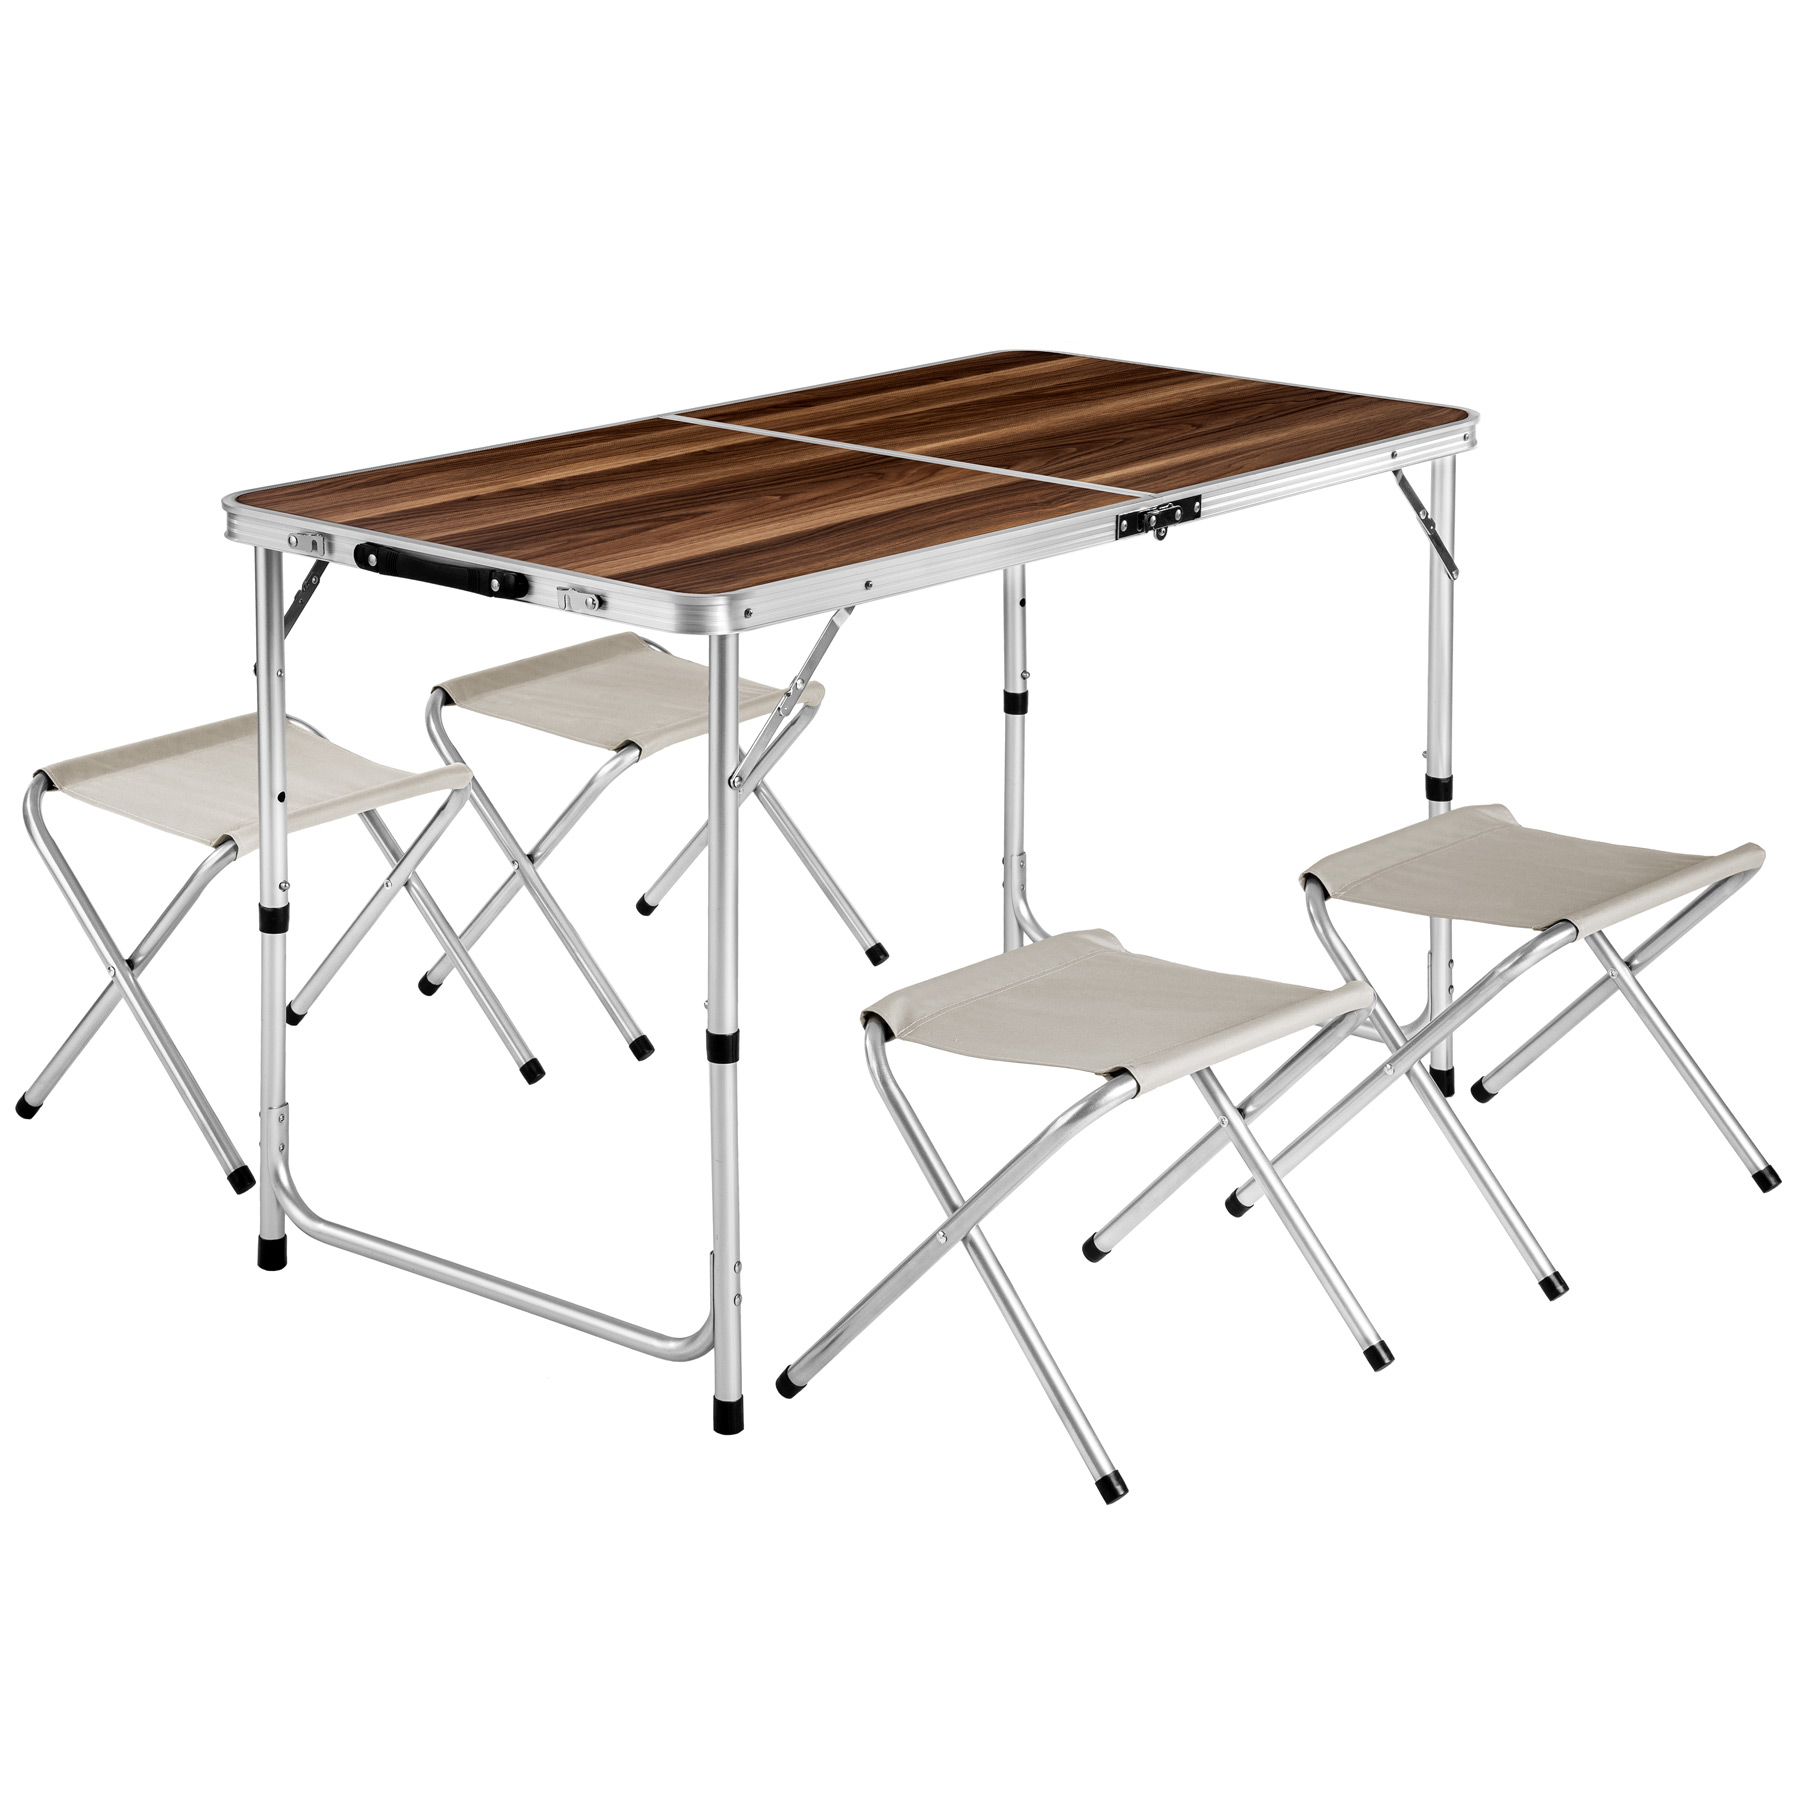 eensemble table pliante valise avec 4 tabourets camping aluminium pique nique. Black Bedroom Furniture Sets. Home Design Ideas